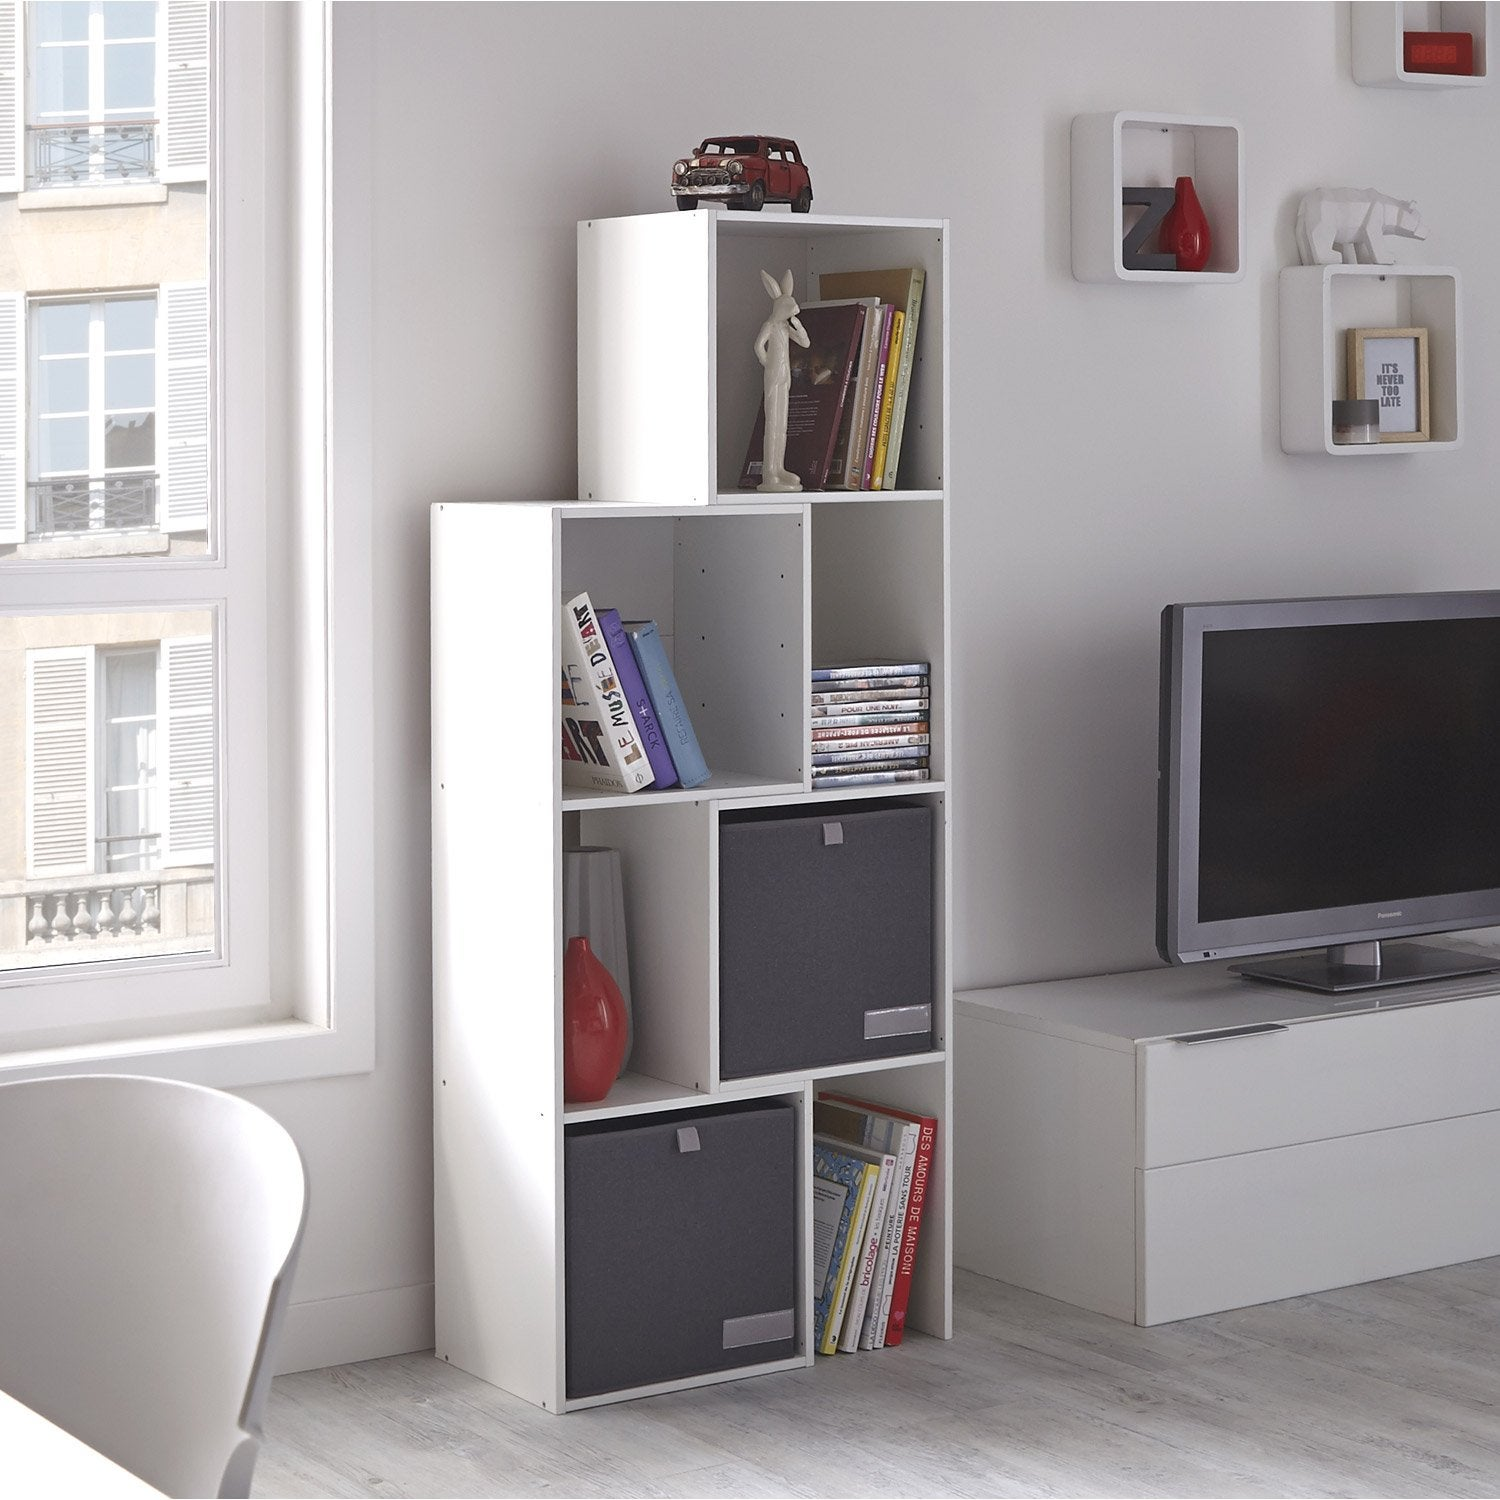 Etag re 7 cases multikaz blanc x x cm leroy merlin - Etagere leroy merlin ...